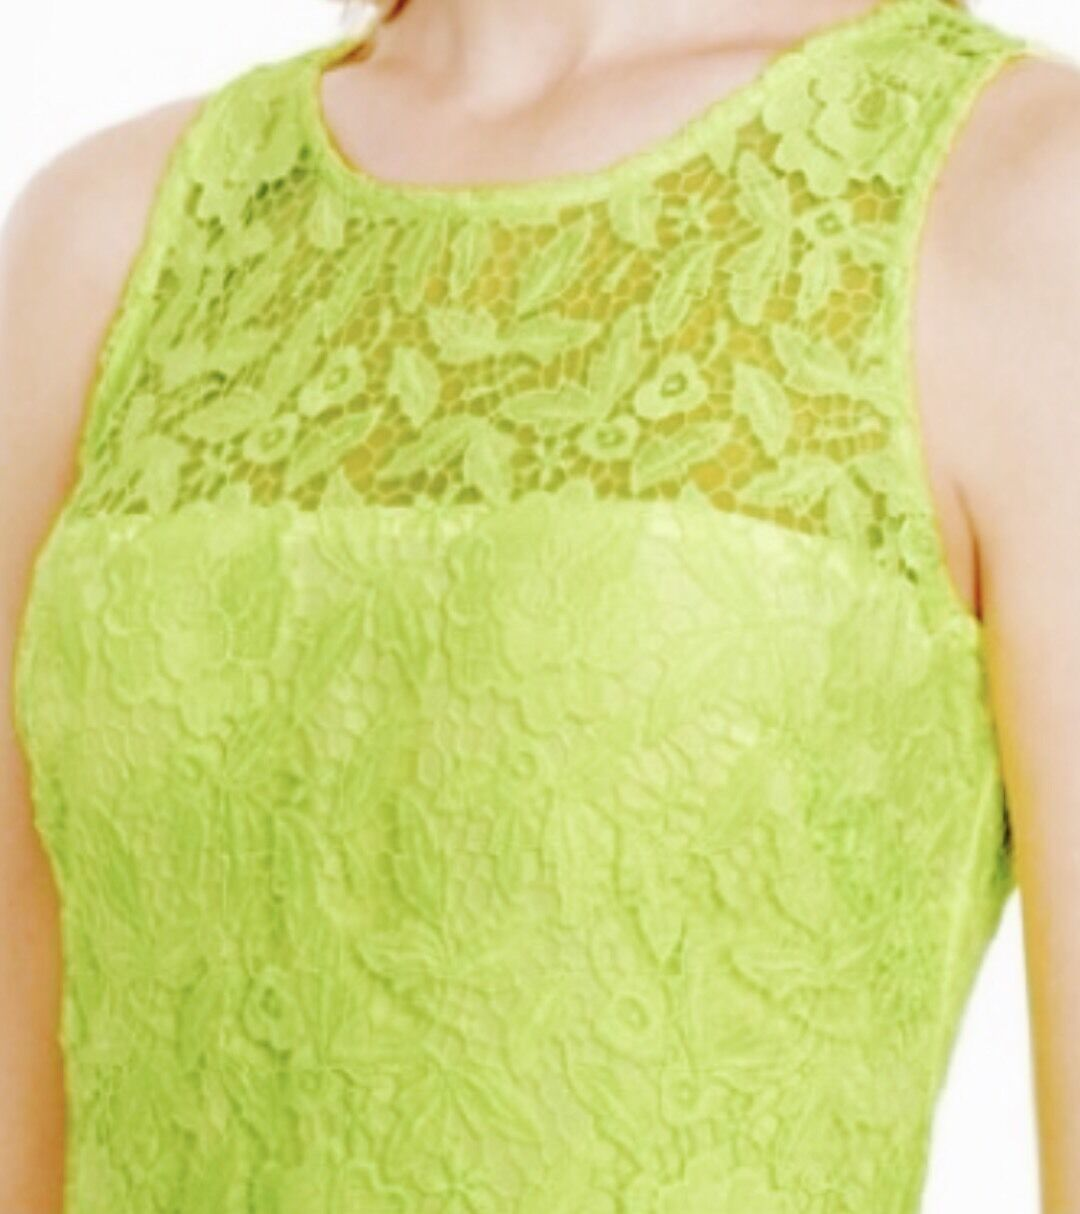 J Crew Collection A8182 Women's Lace Sheath Neon Yellow Dress Dress Dress 2 64a1e5